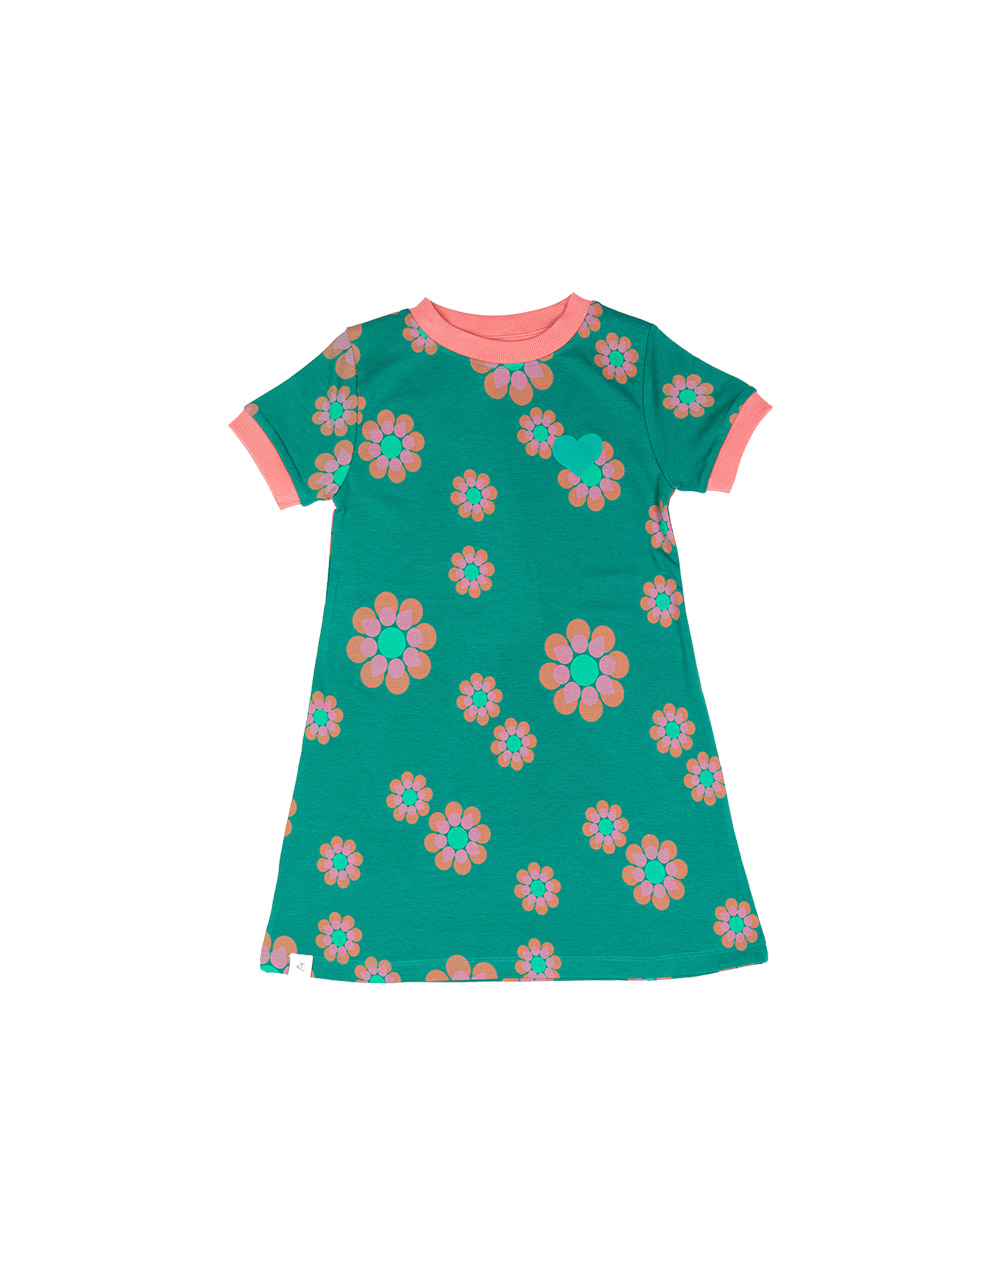 ALBA ORIGINAL VIDA DRESS   Alpine Green Flower